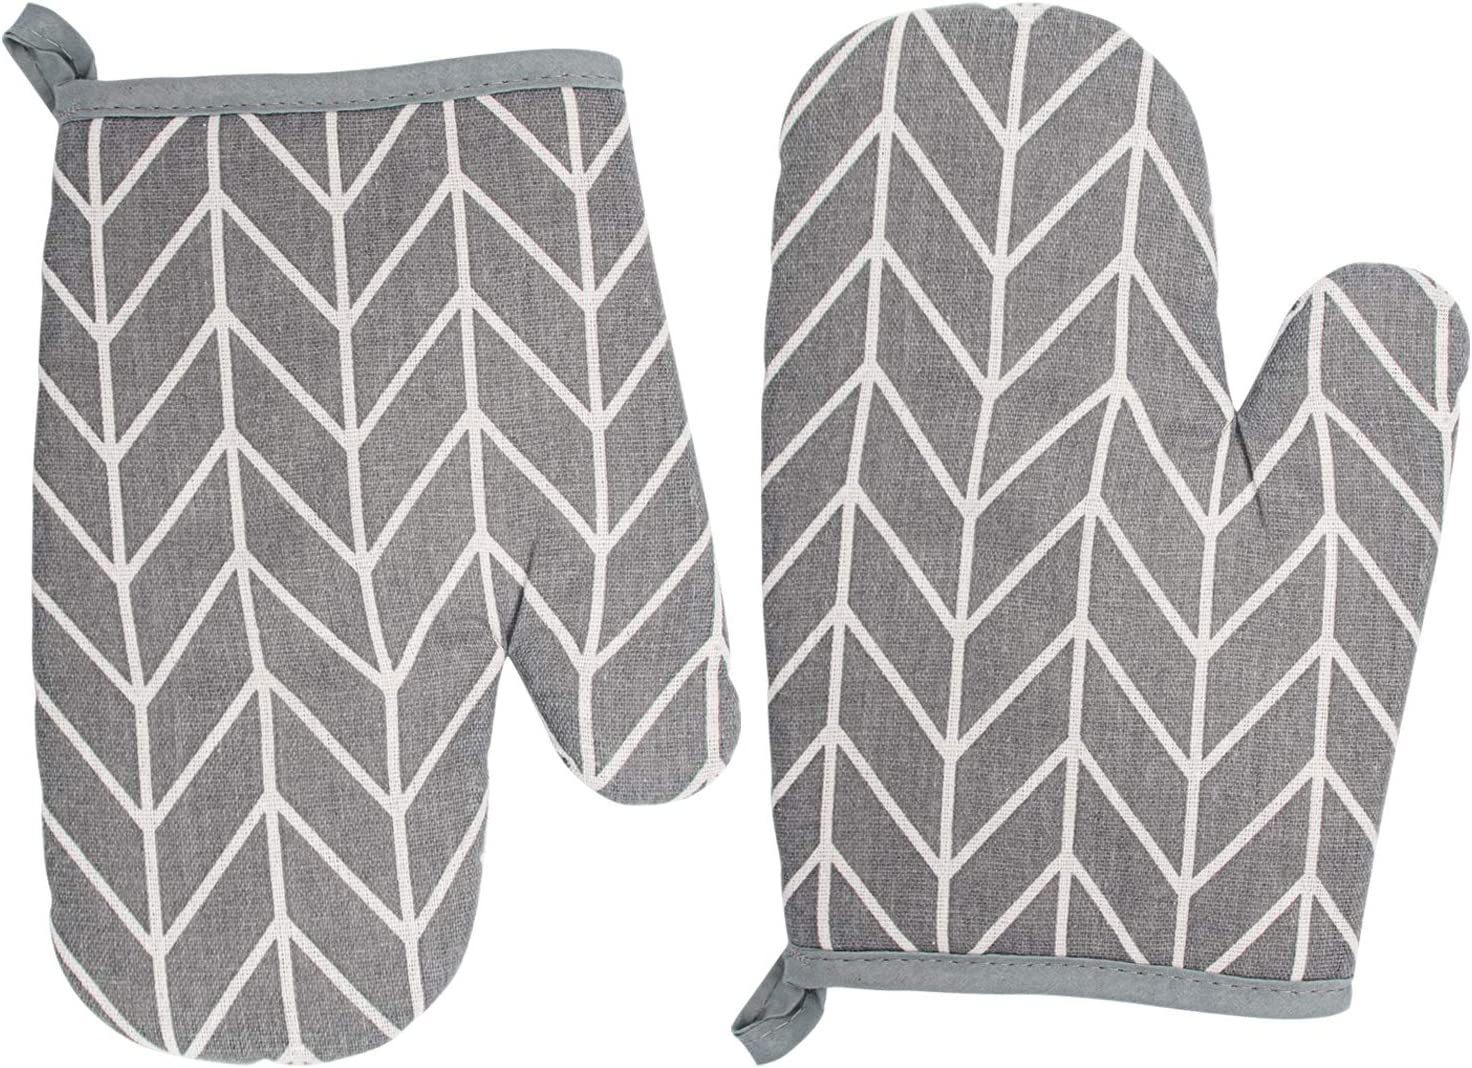 YoNiYar Oven Mitts, Extra Long Heat Resistant Oven Gloves, 1 Pair of Quilted Cotton Lining and Hanging Loop Funny Kitchen Oven Mitts Sets for Cooking, Baking, Microwave, Grilling and BBQ (Grey)